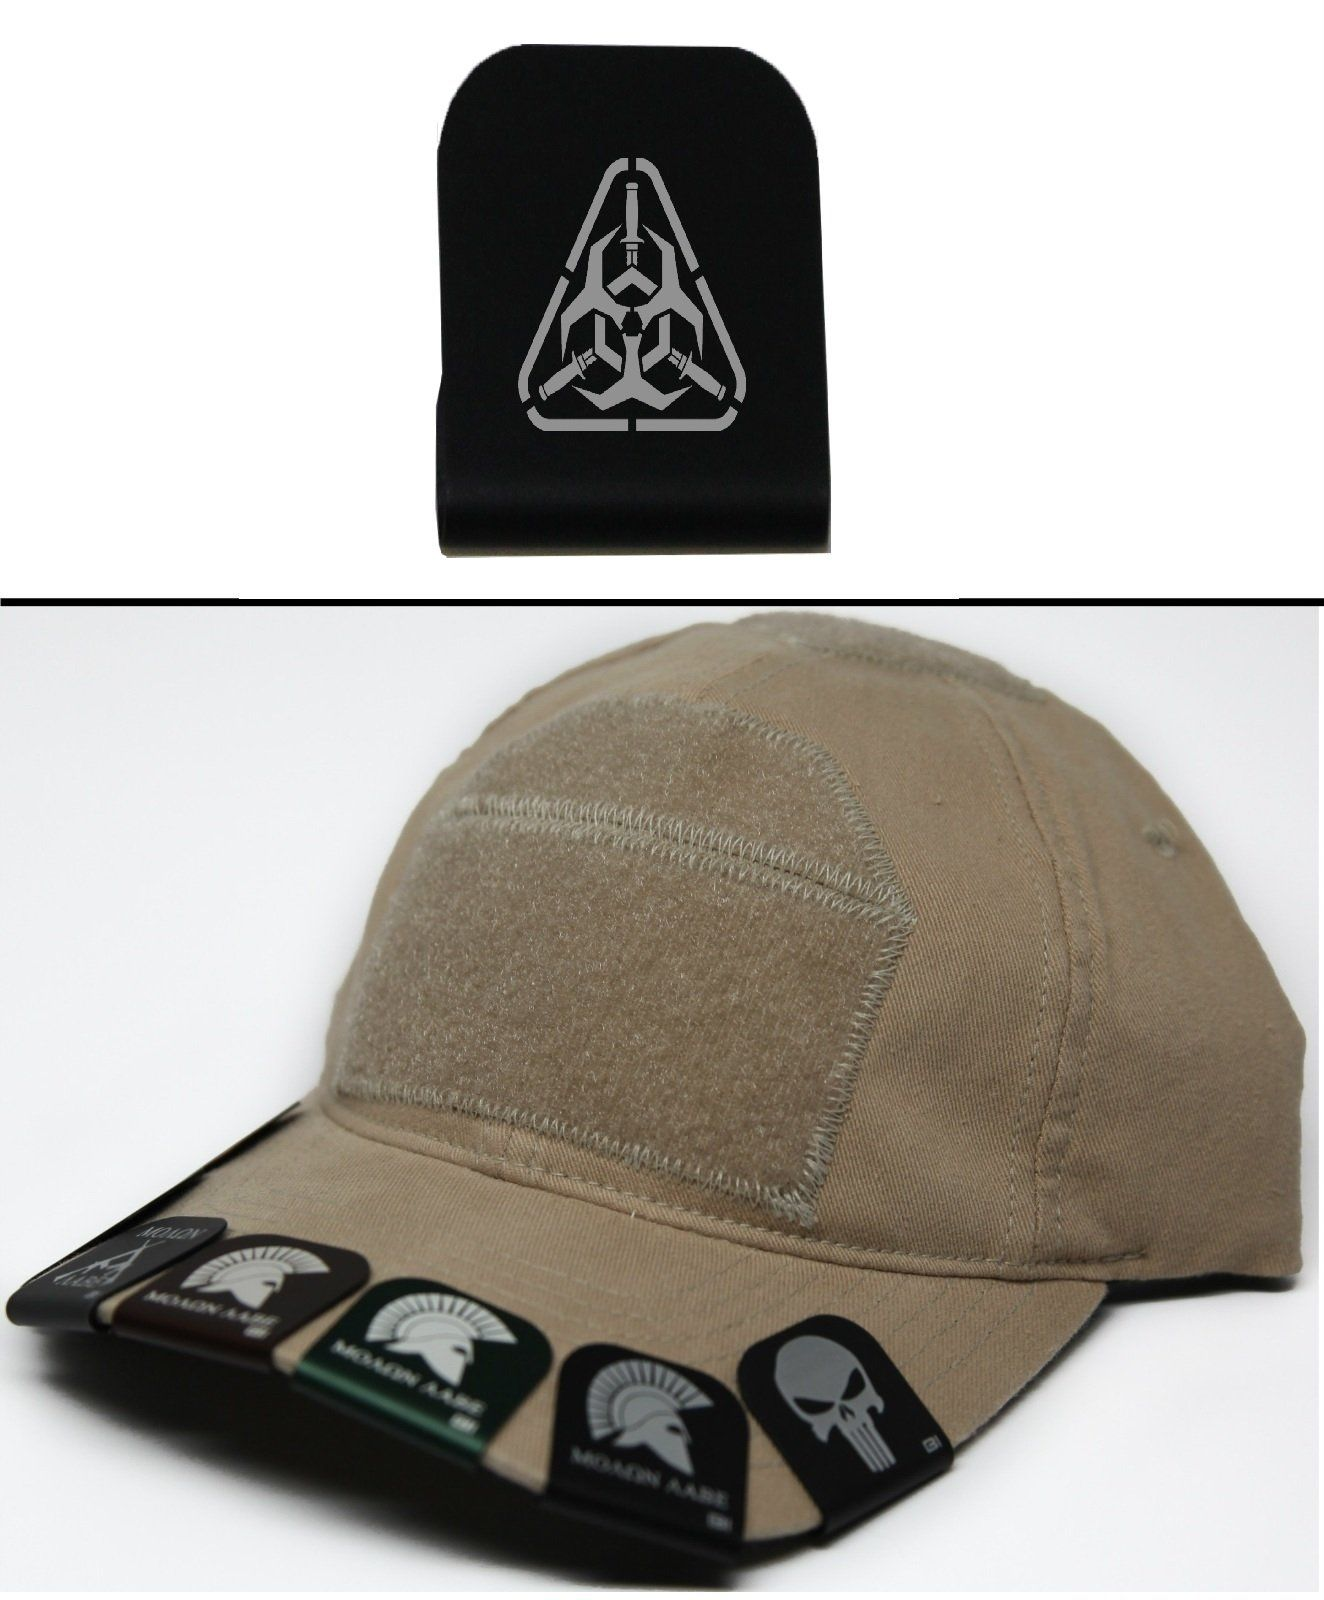 82669352a Ultimate Arms Gear RADIOACTIVE WITH KNIVES Hat Cap Crown Brim-It, Black.  Great